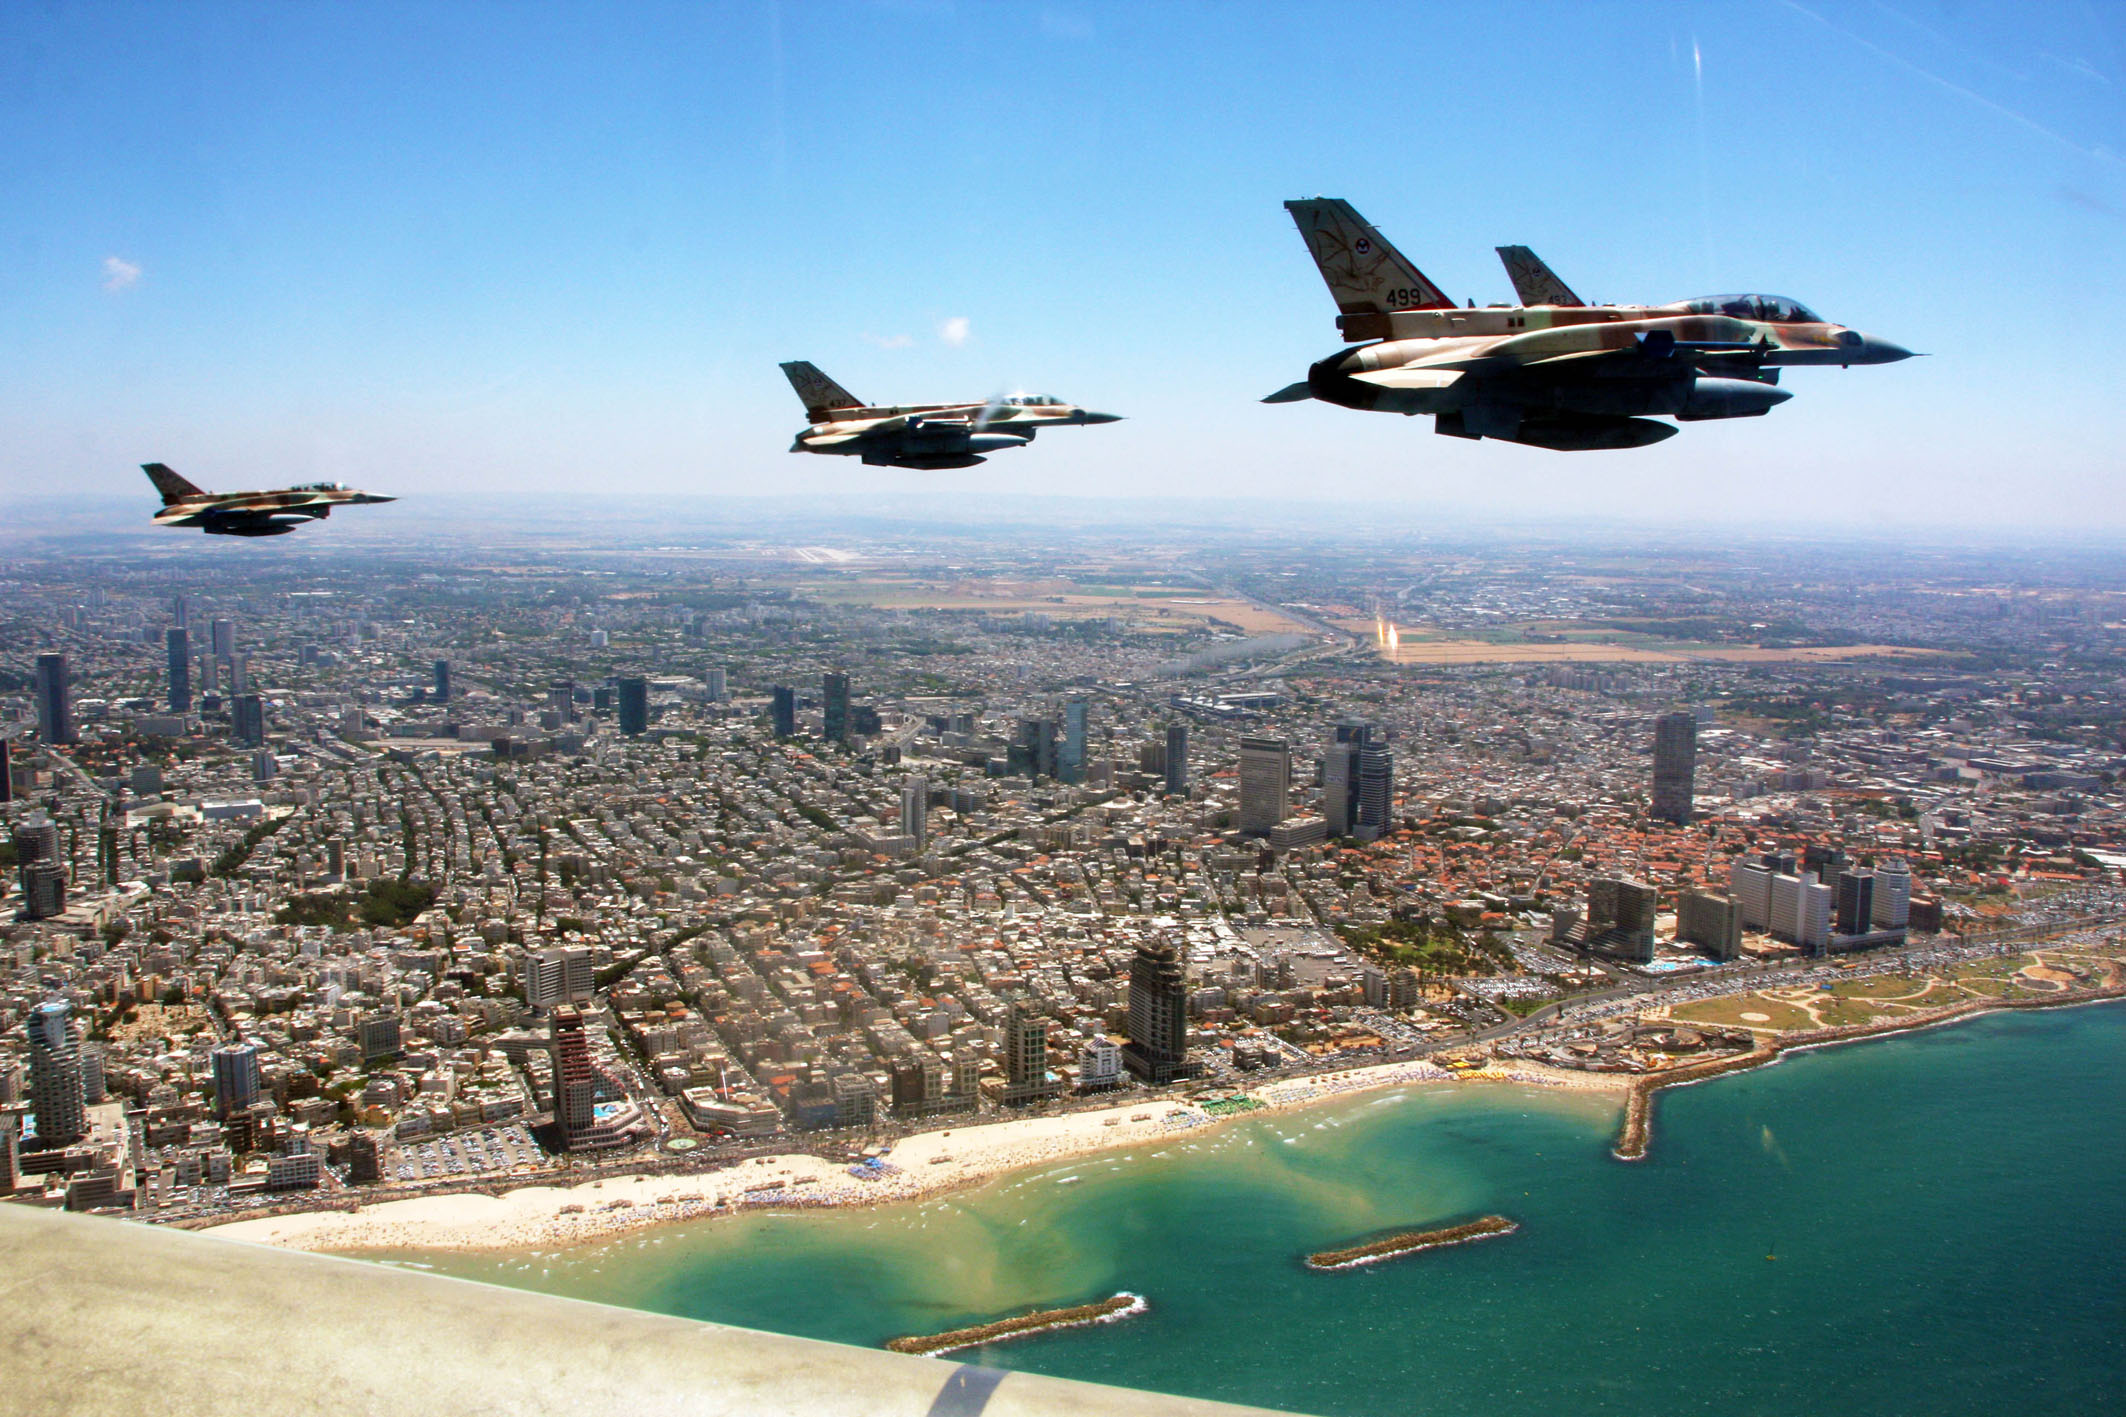 The Israeli Air Force crosses all of Israel from north to south, in honor of the country's 63rd Independence Day in 2011/5771.